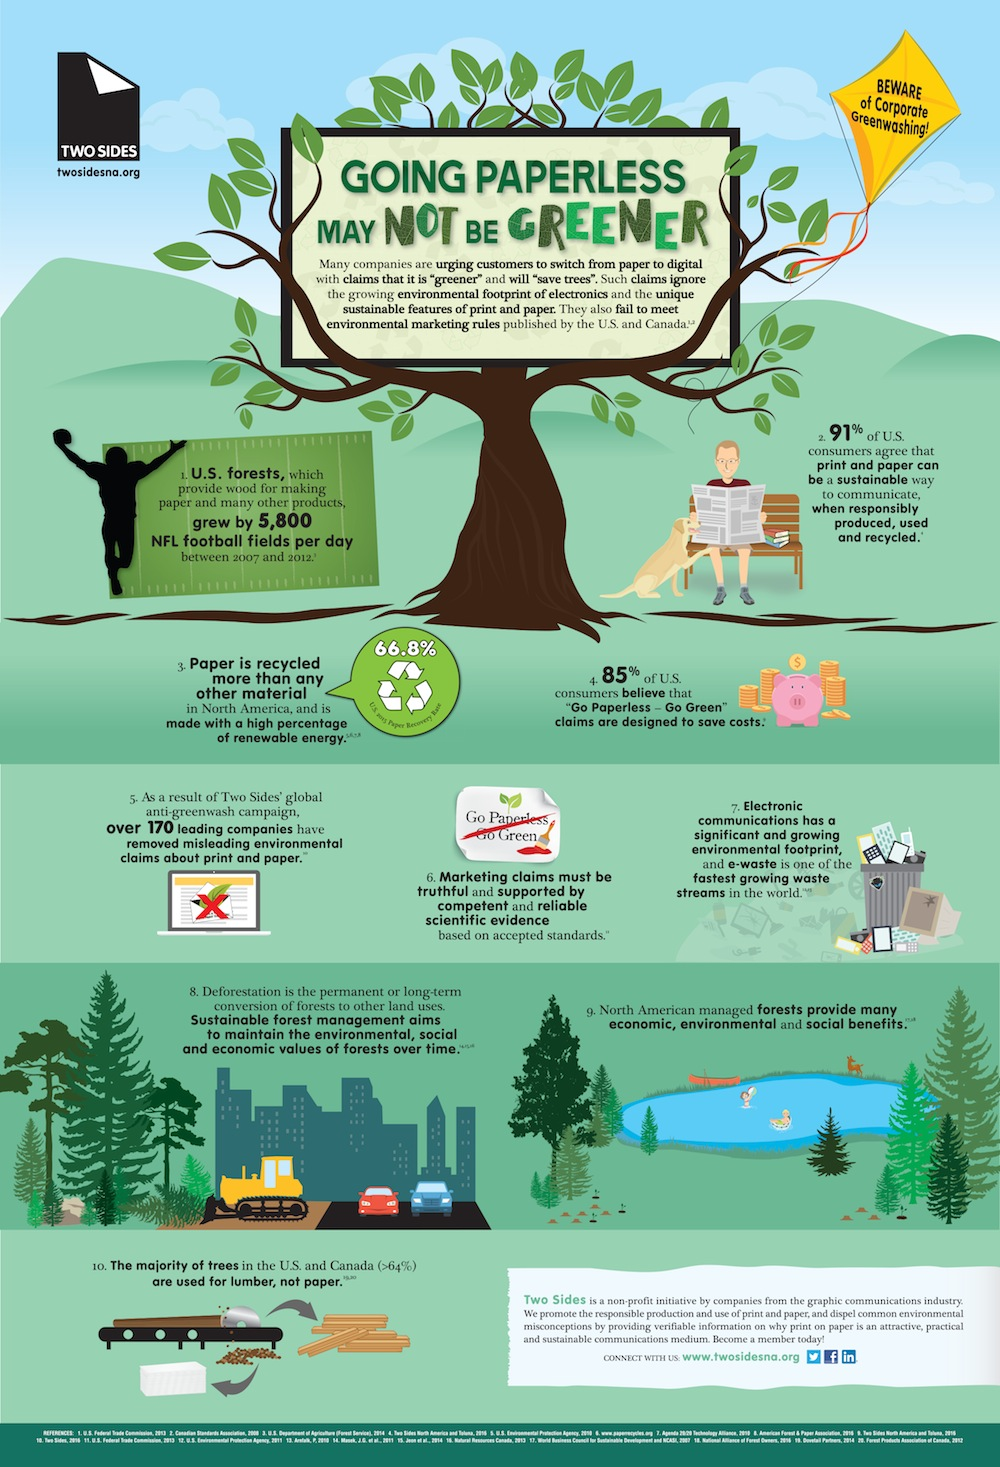 Year 2015 Calendar Time And Date Going Paperless May Not Be Greener – Two Sides New Infographic